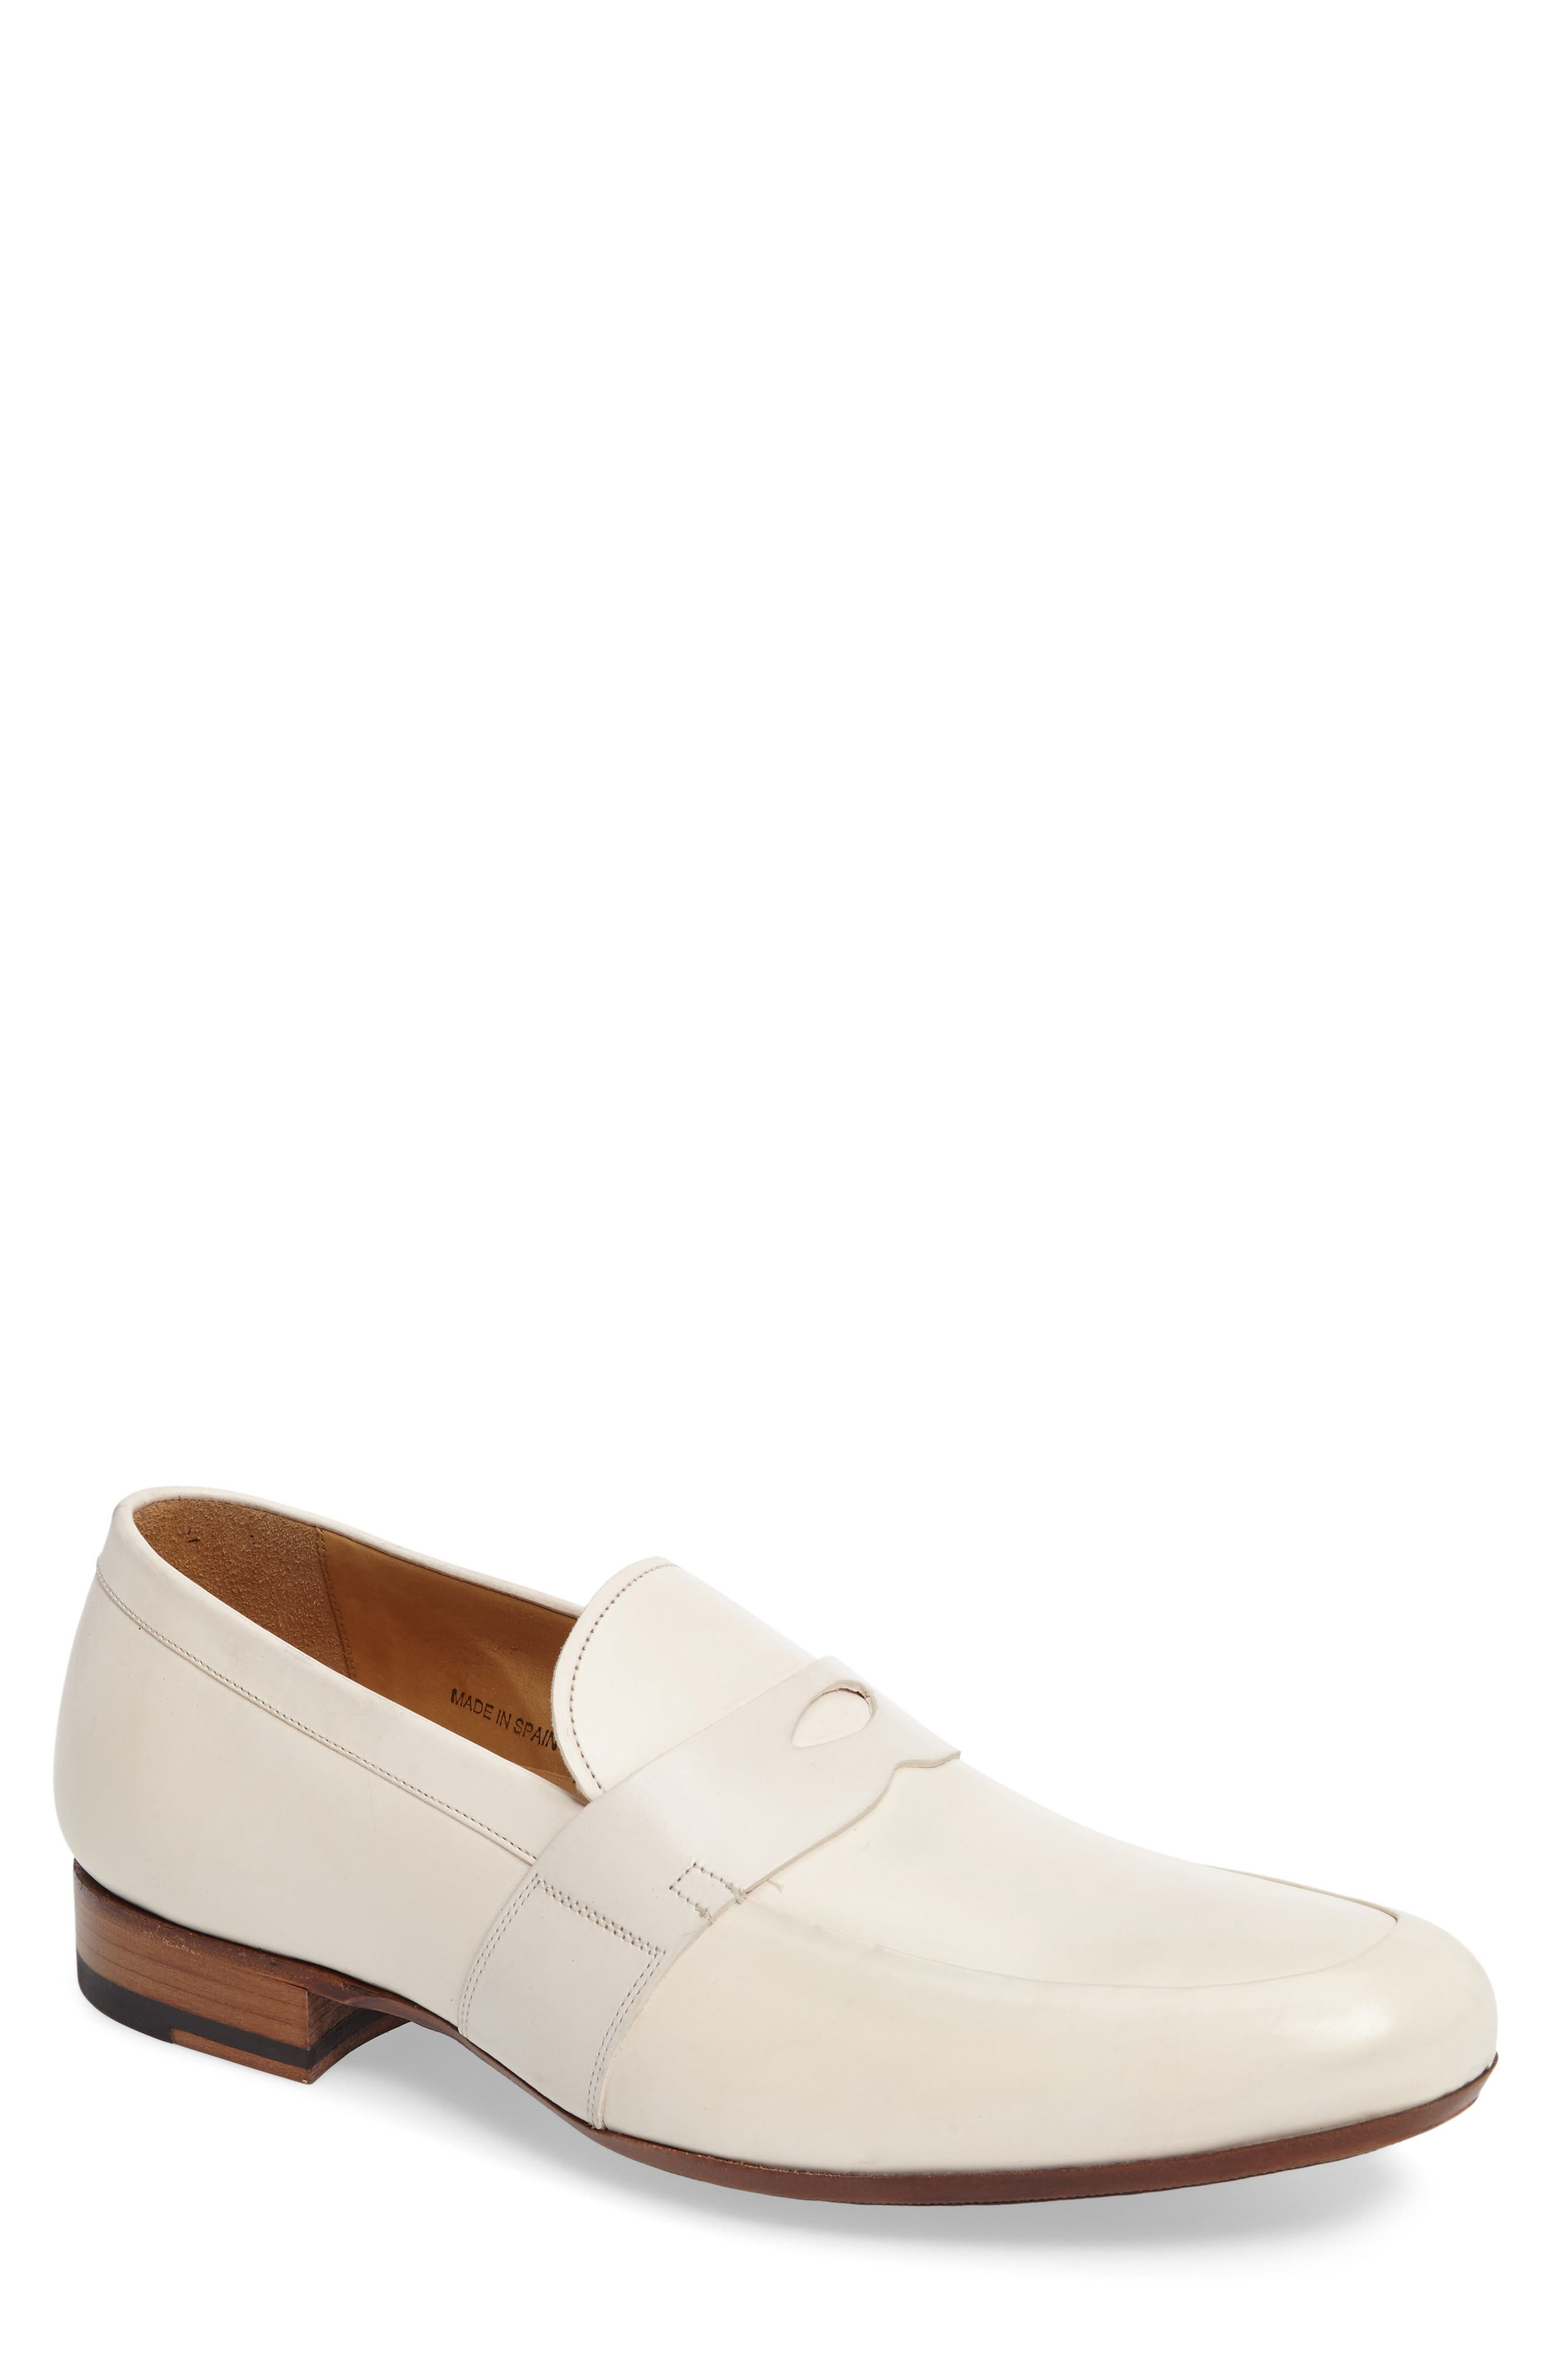 Leopold Penny Loafer,                         Main,                         color, Bone Leather